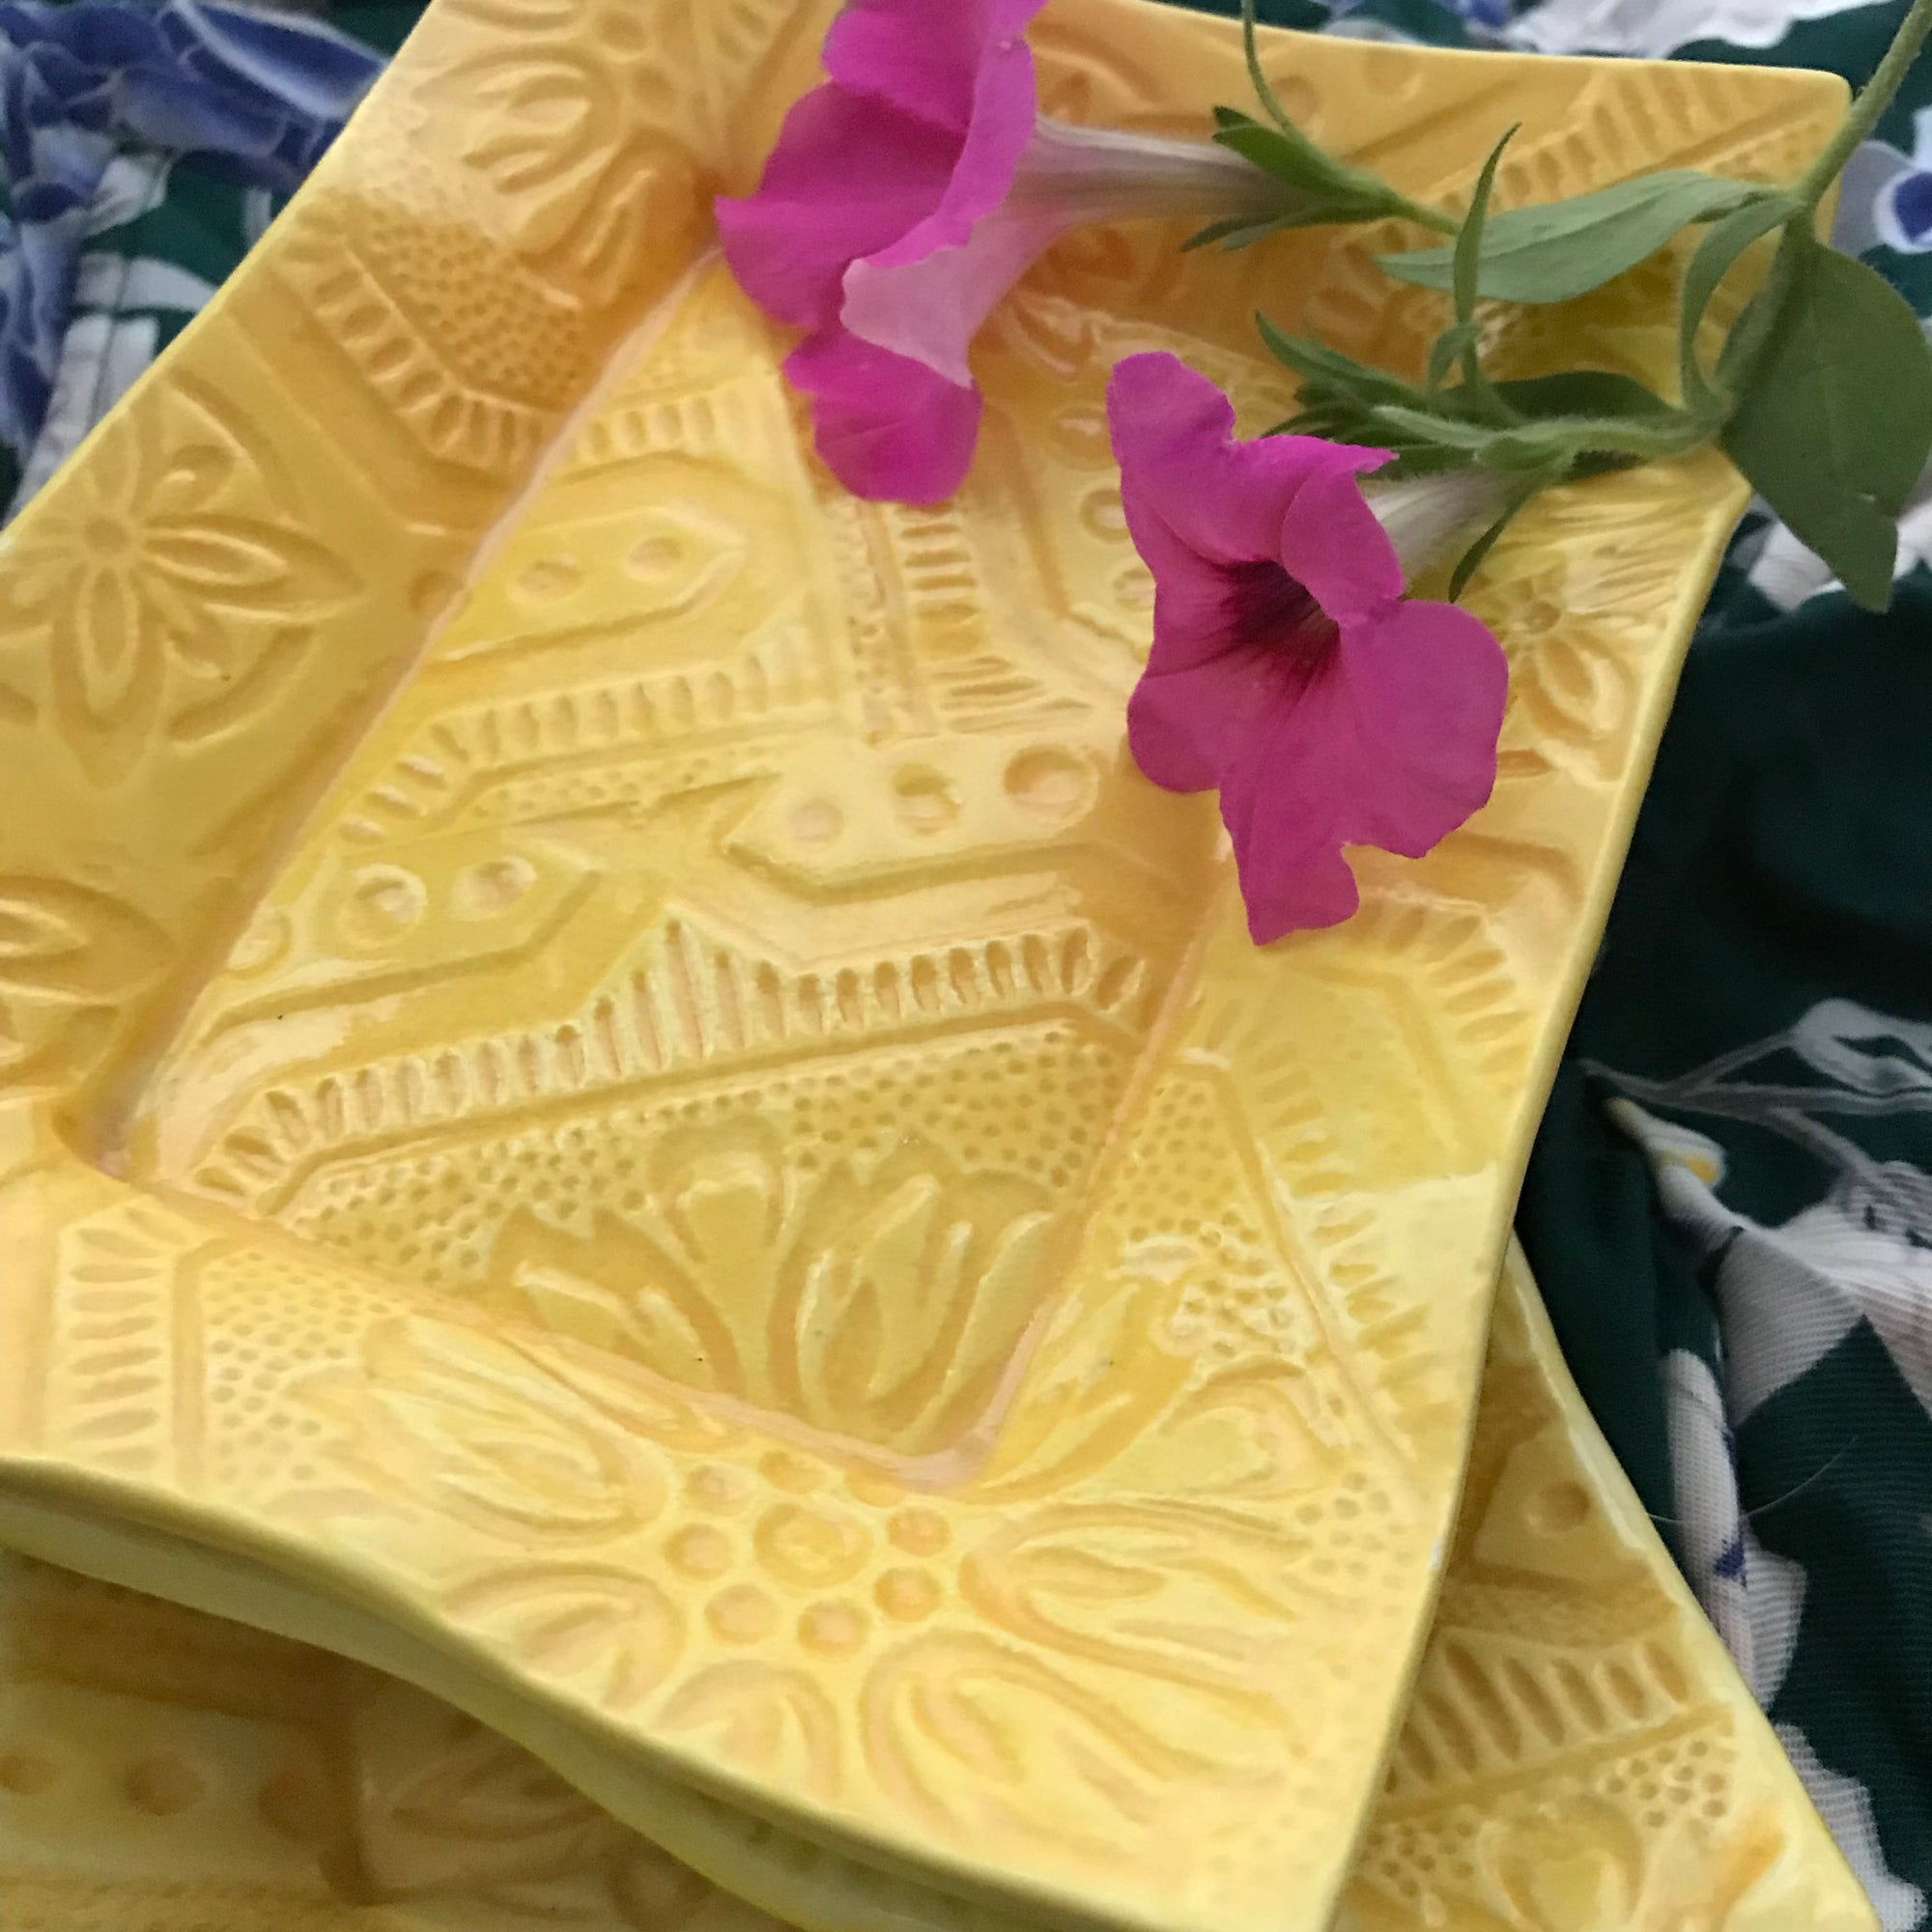 Stunning handmade ceramic tray in yellow glaze shown with magenta flowers. with